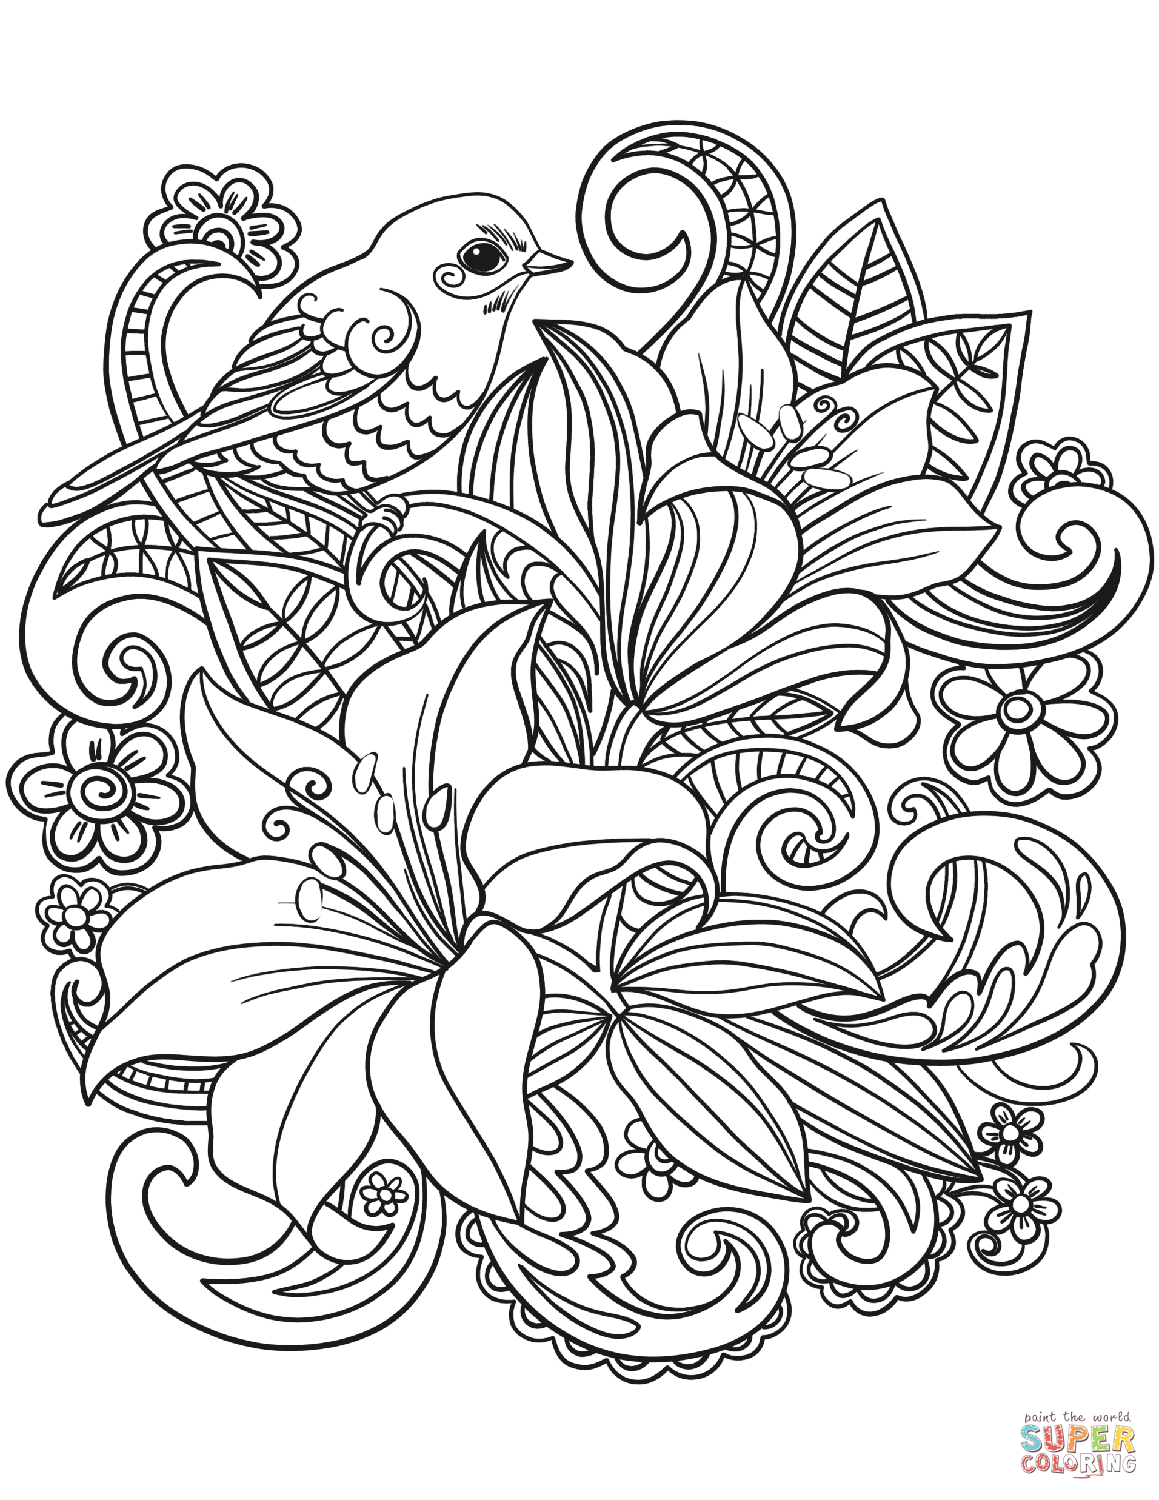 Skylark And Flowers Coloring Page